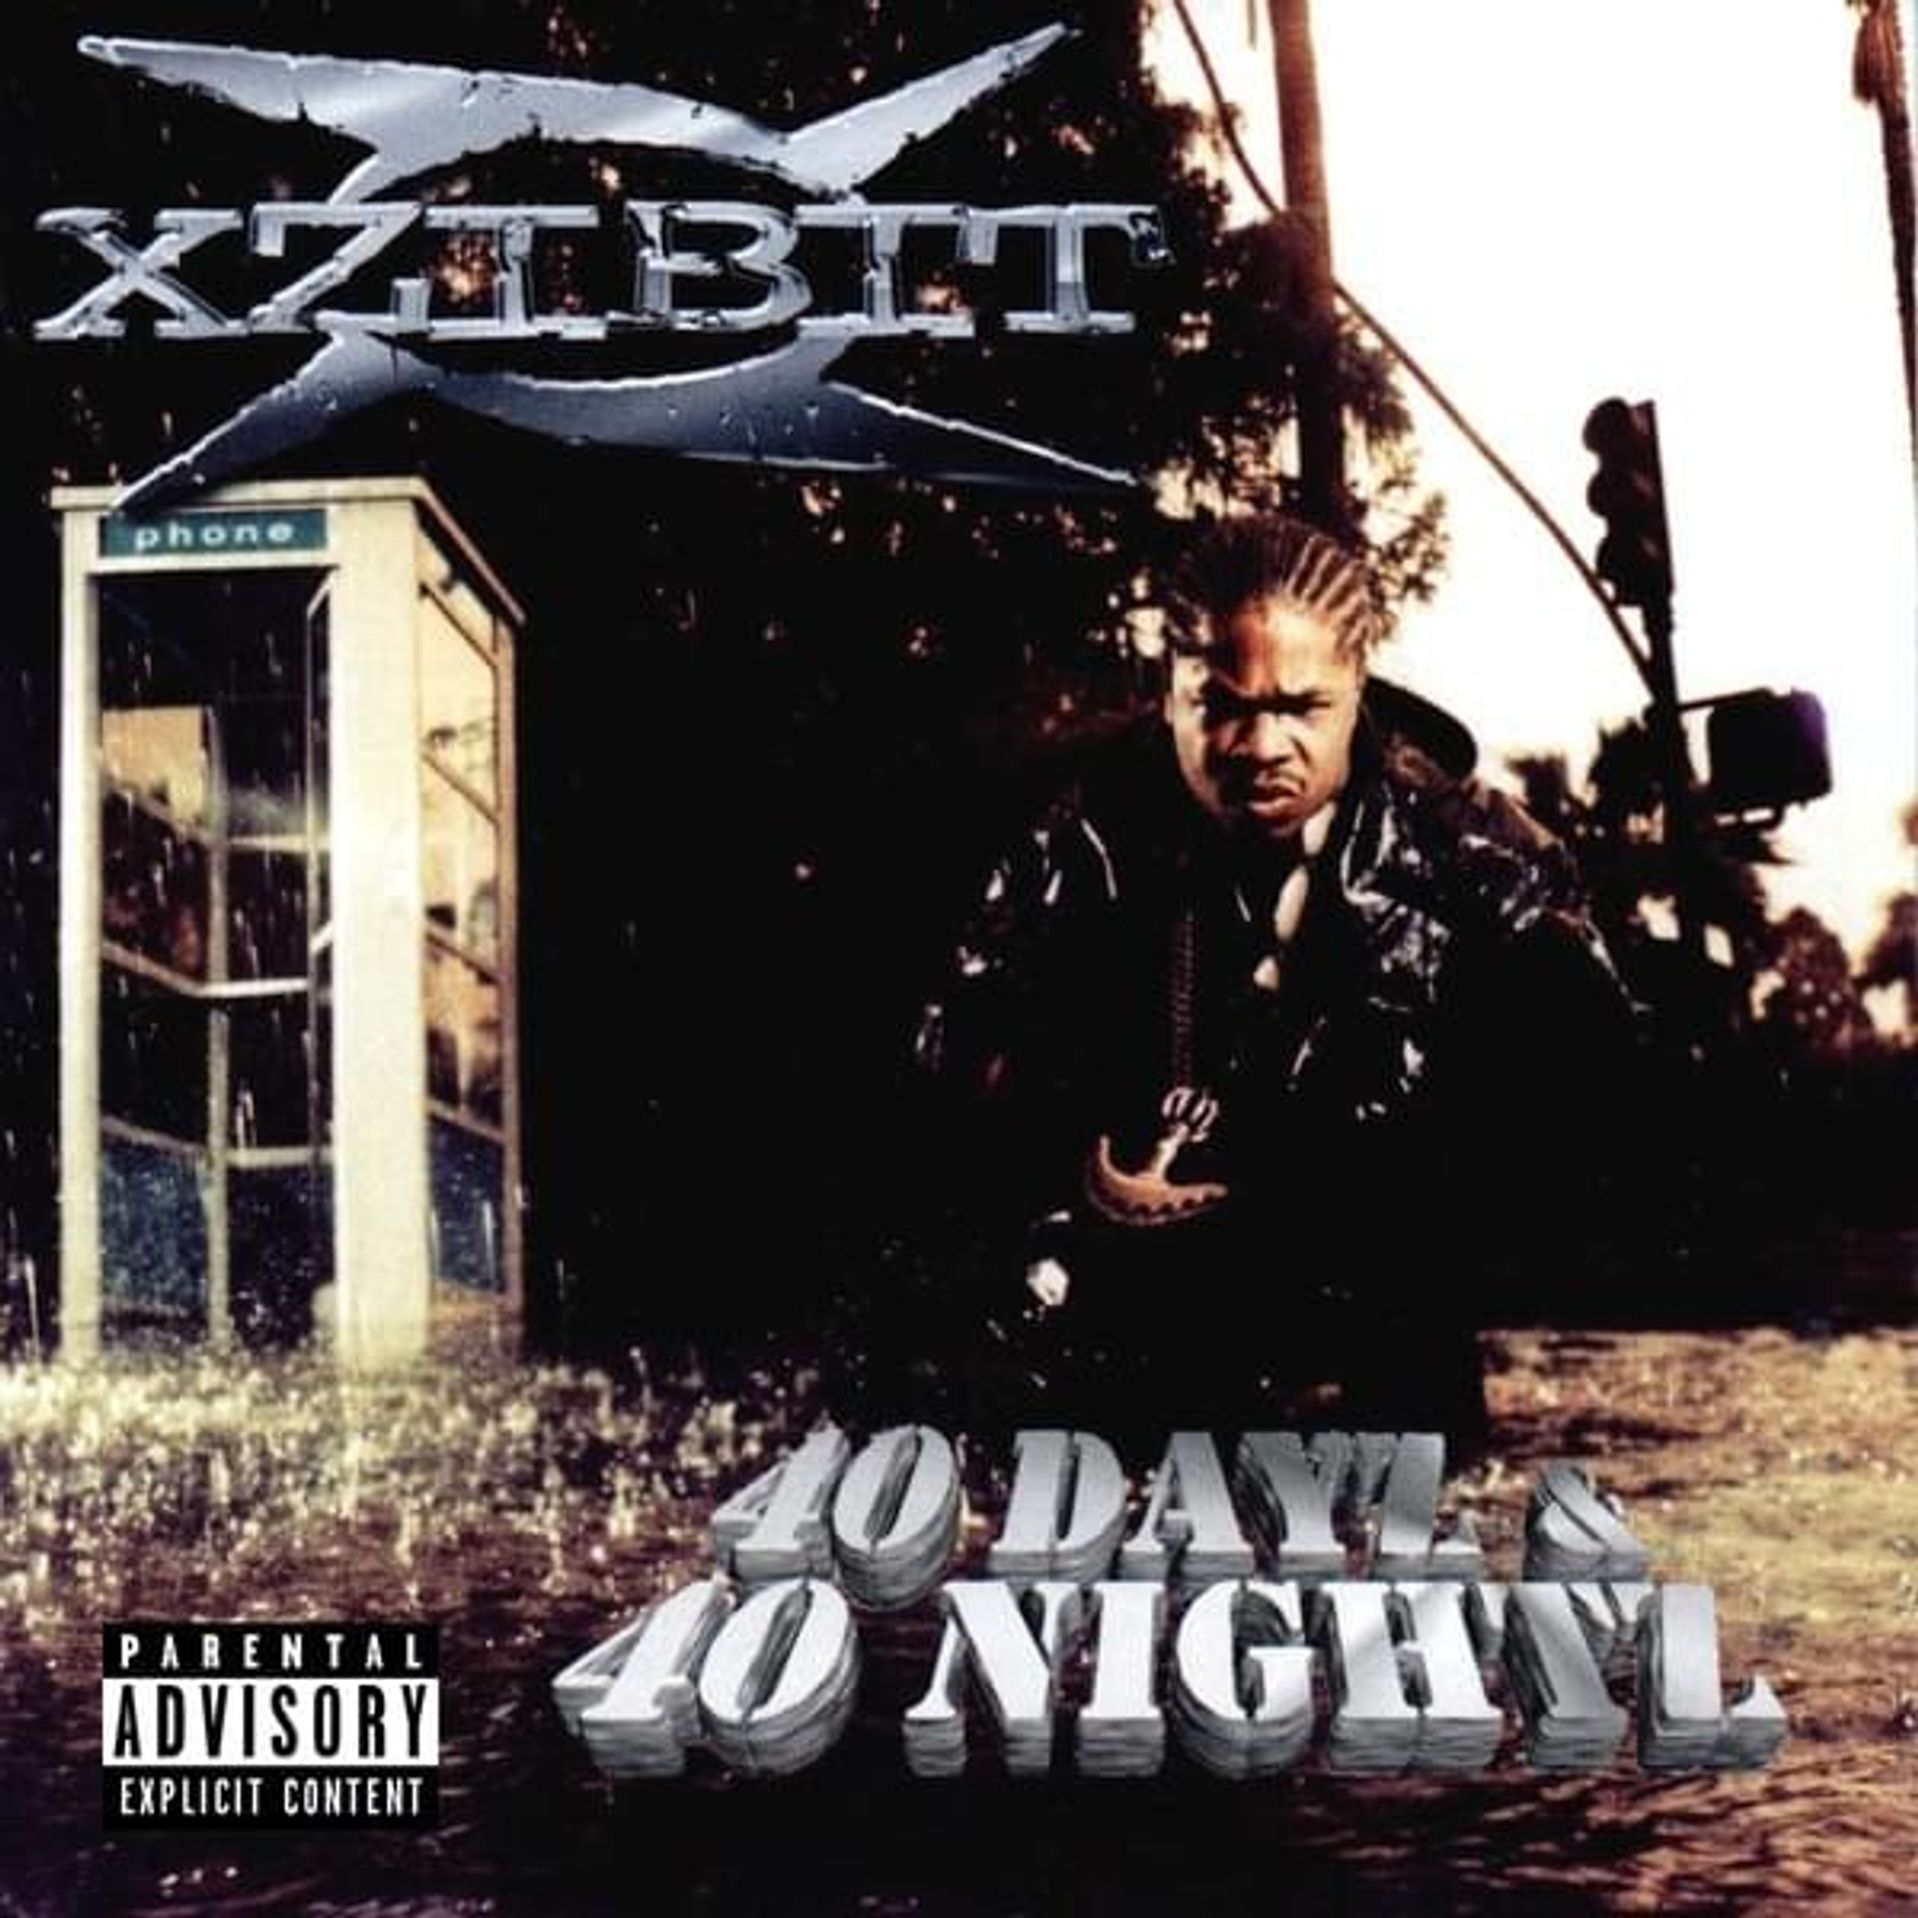 Album Title: 40 Days & 40 Nightz by: Xzibit